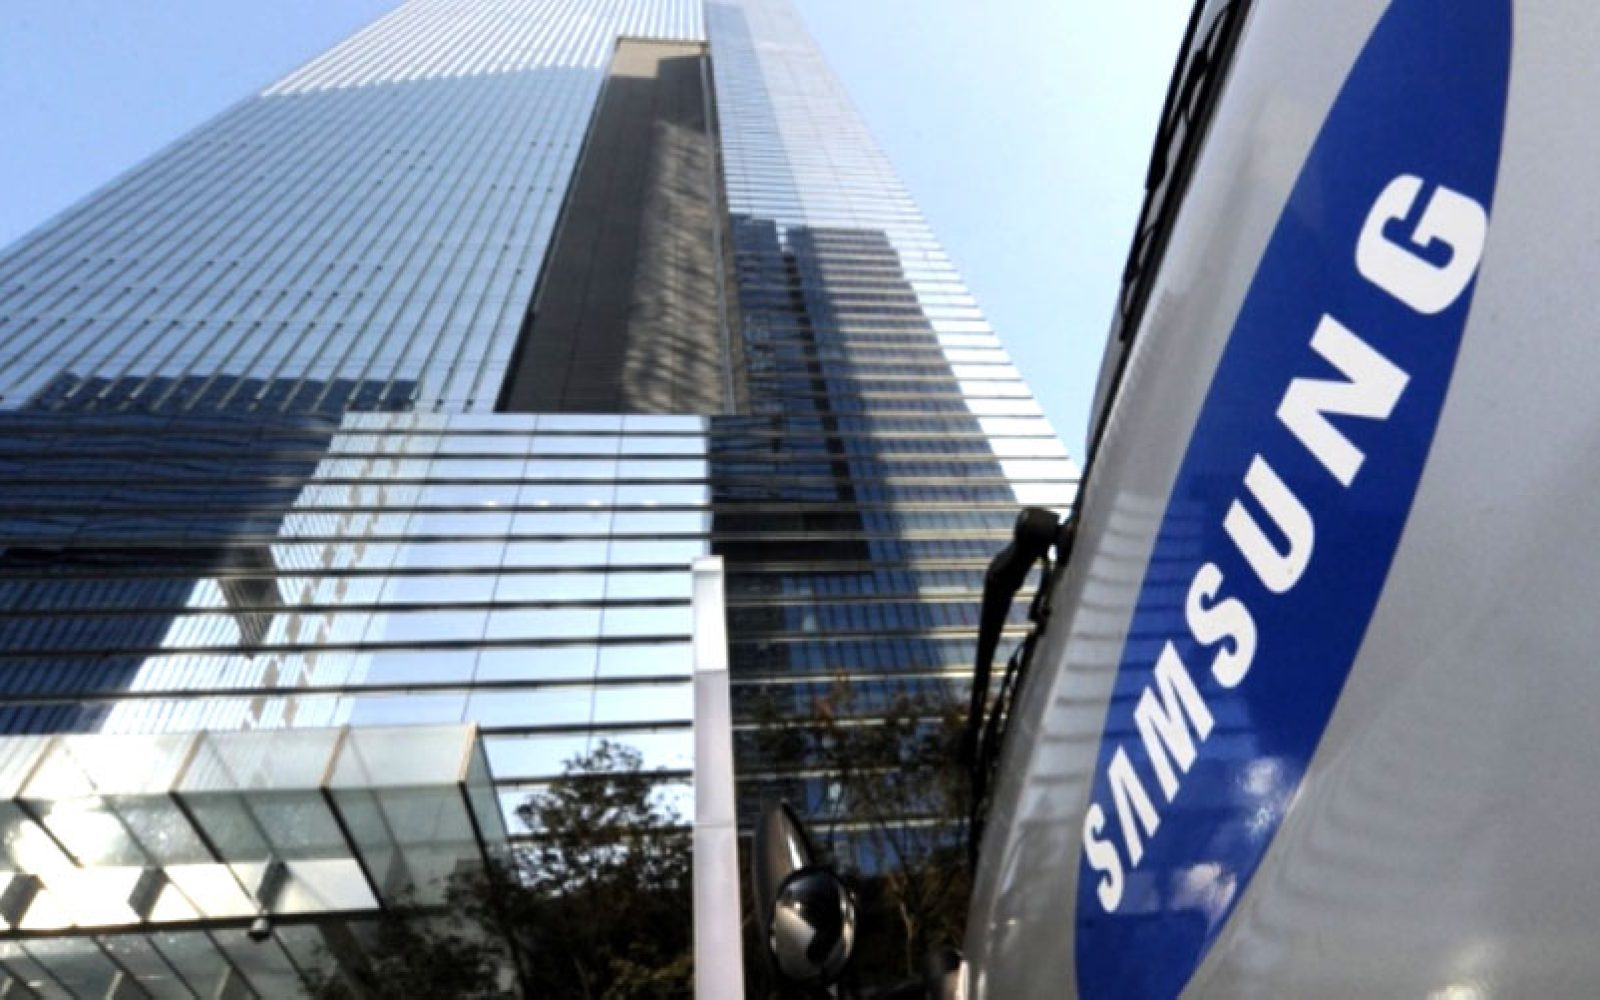 Following loss of Apple business, Samsung planning to spin